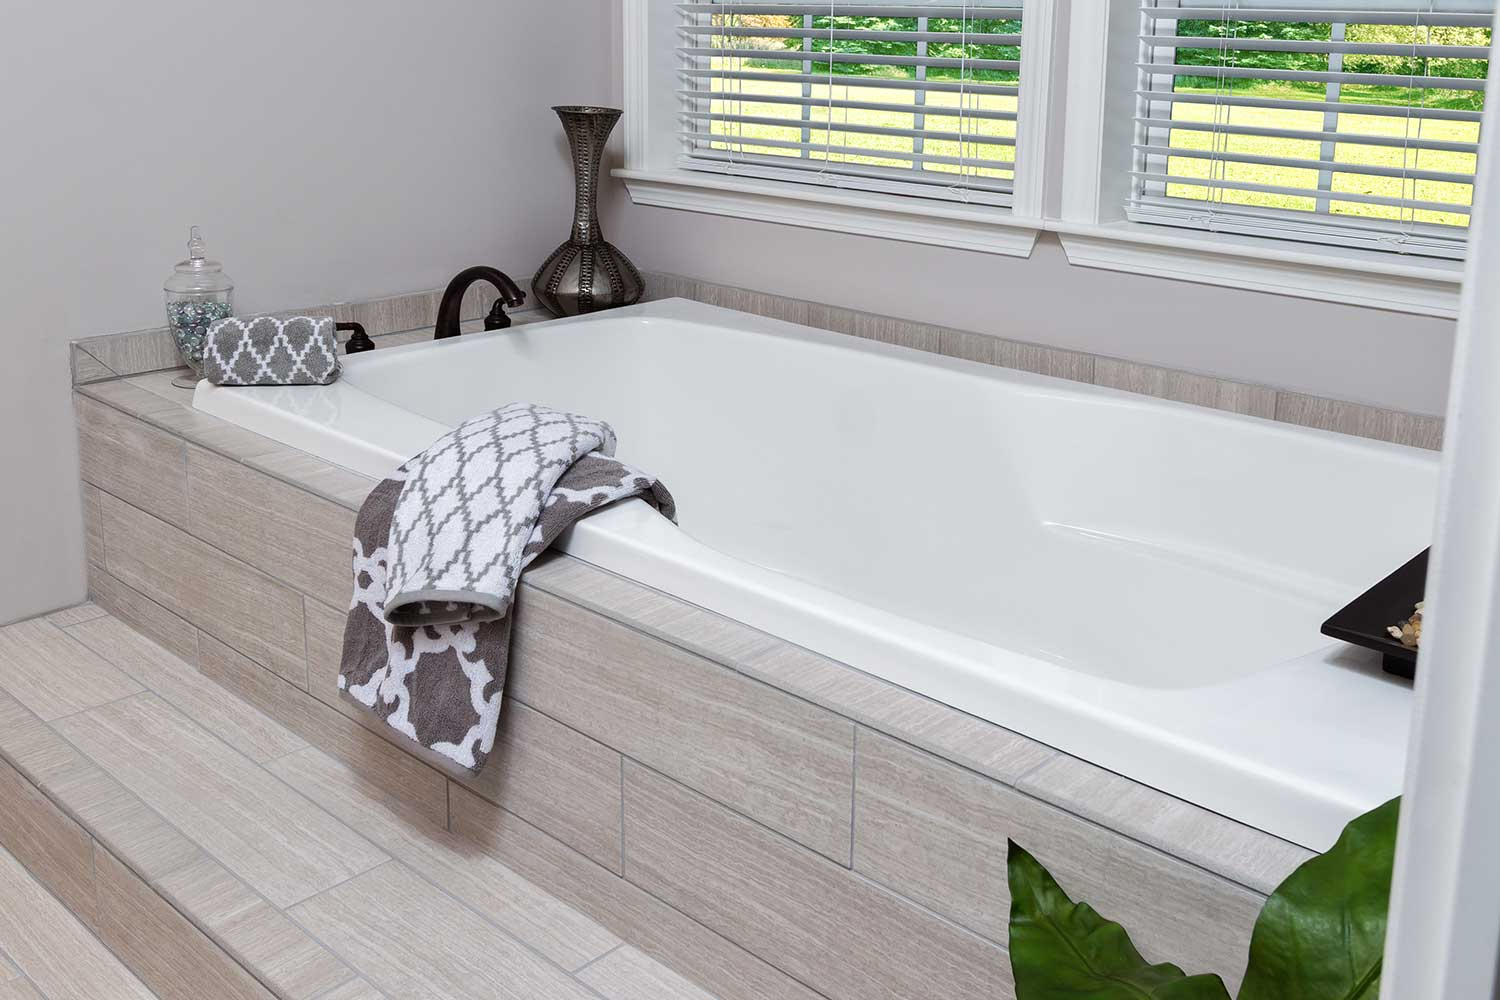 The bathtub of the Franklin Homes The Holly manufactured home from Affordable Homes of Crestview